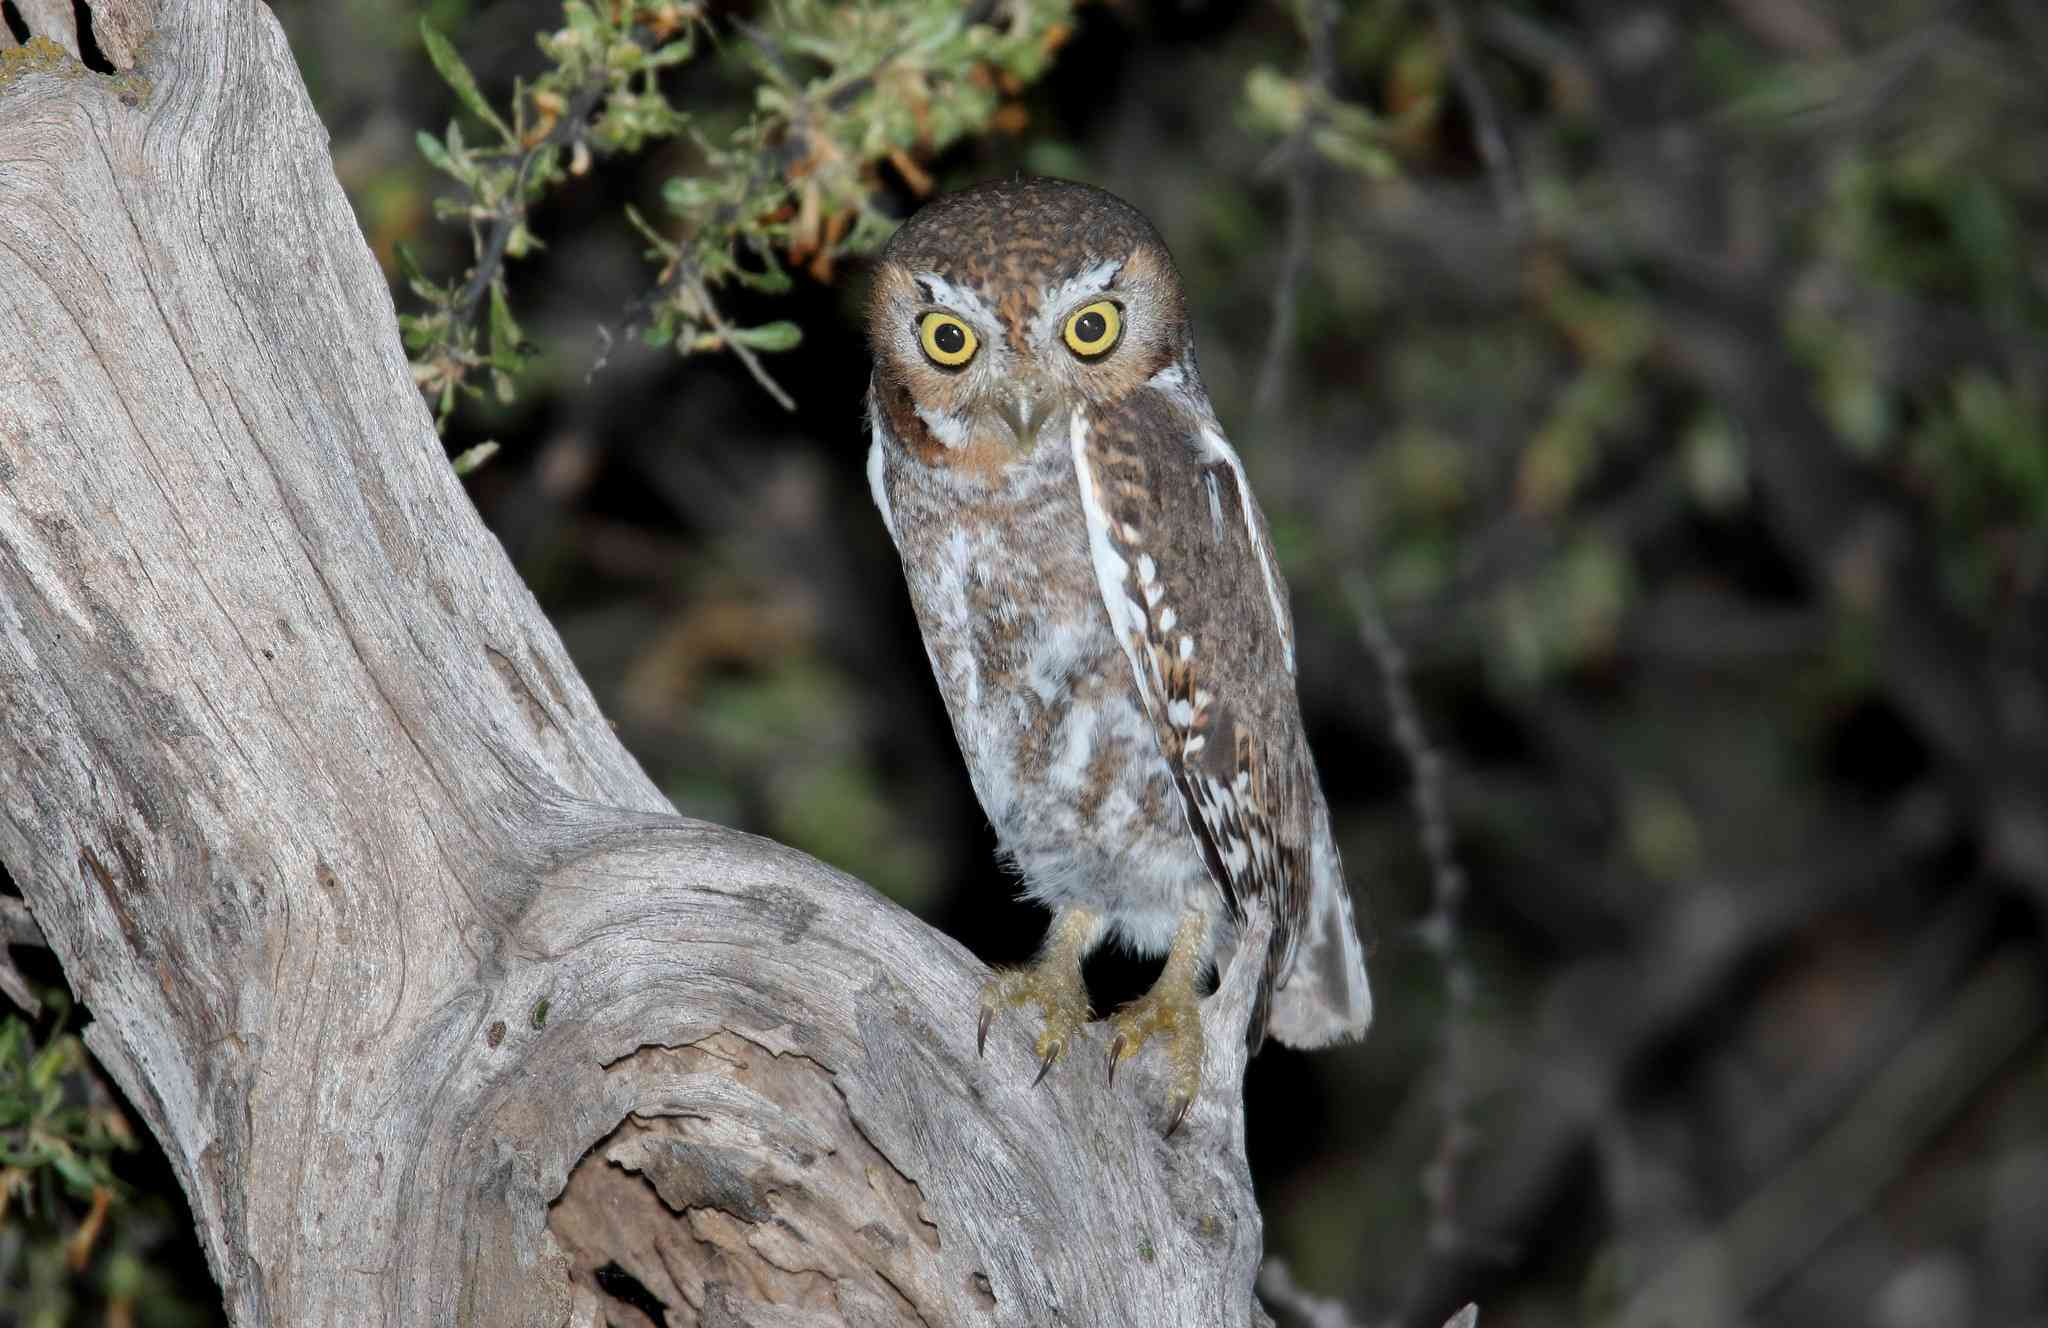 An elf owl at night with large yellow eyes